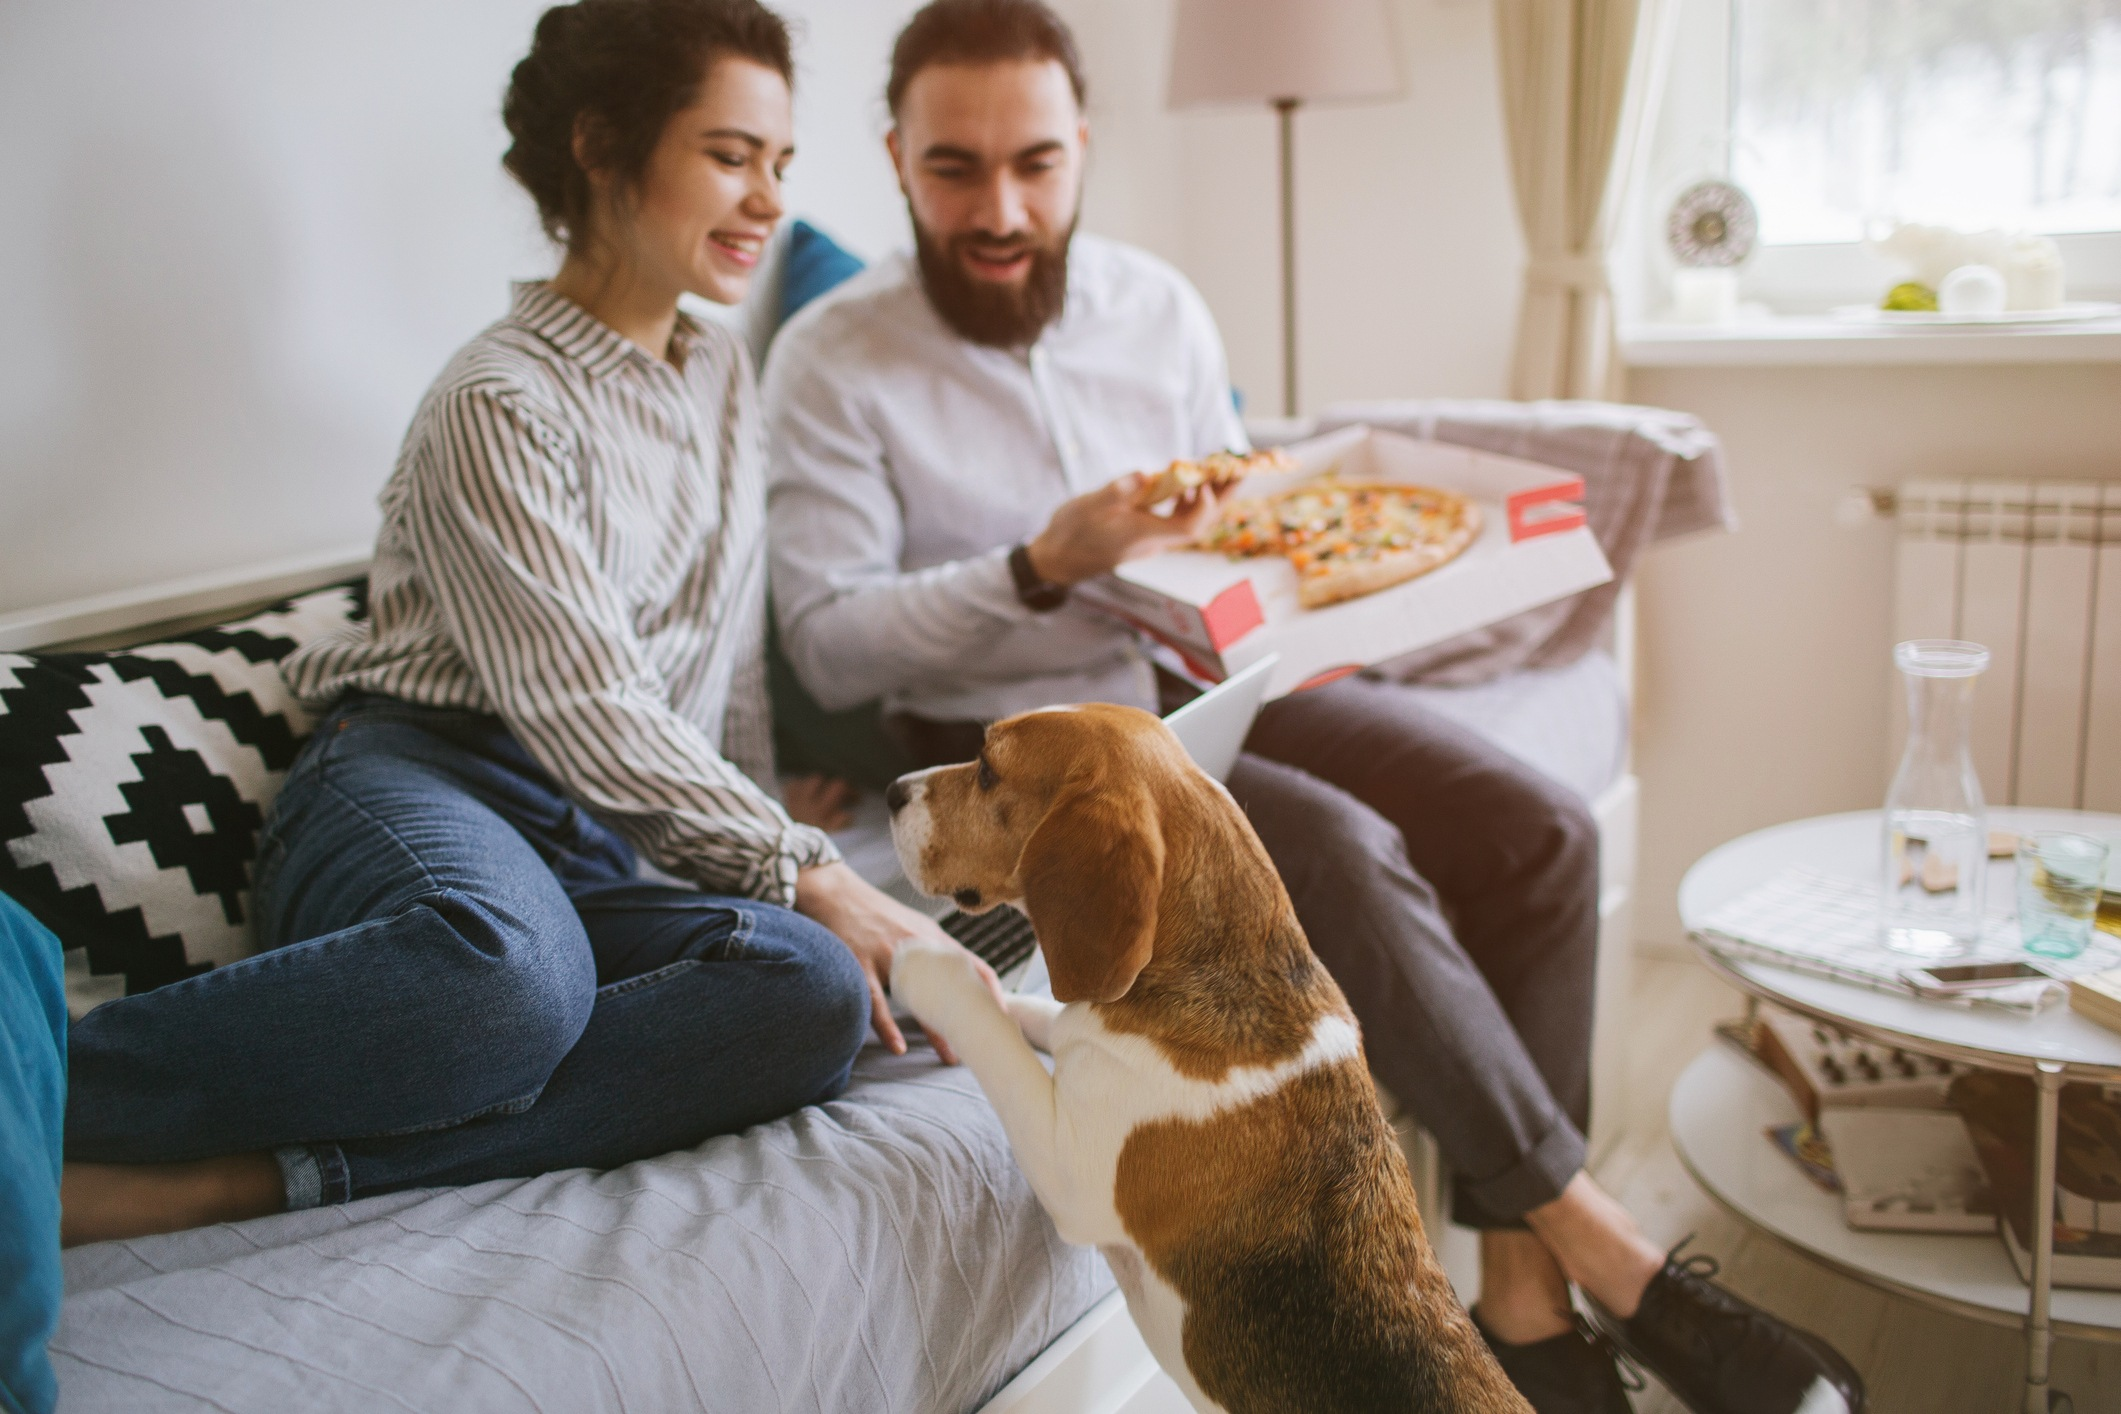 Couple with dog and pizza